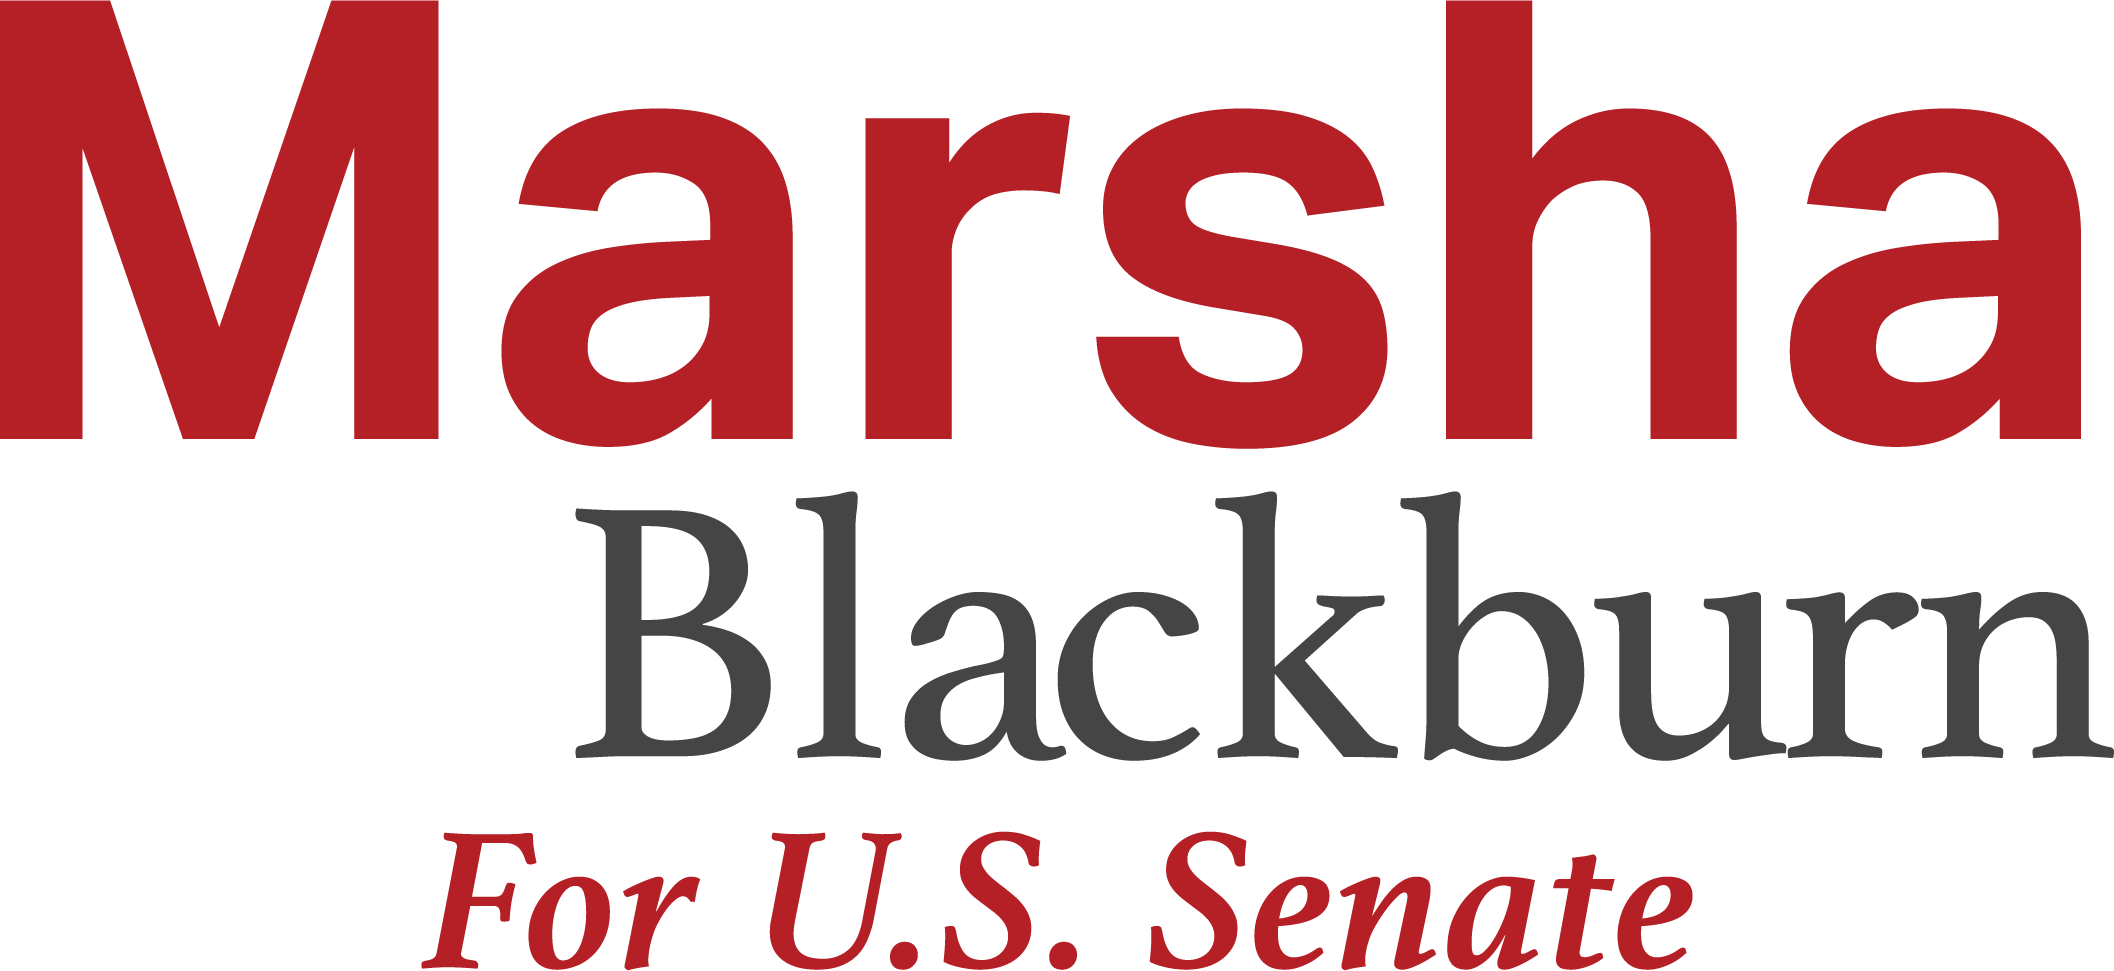 Marsha Blackburn for U.S. Senate